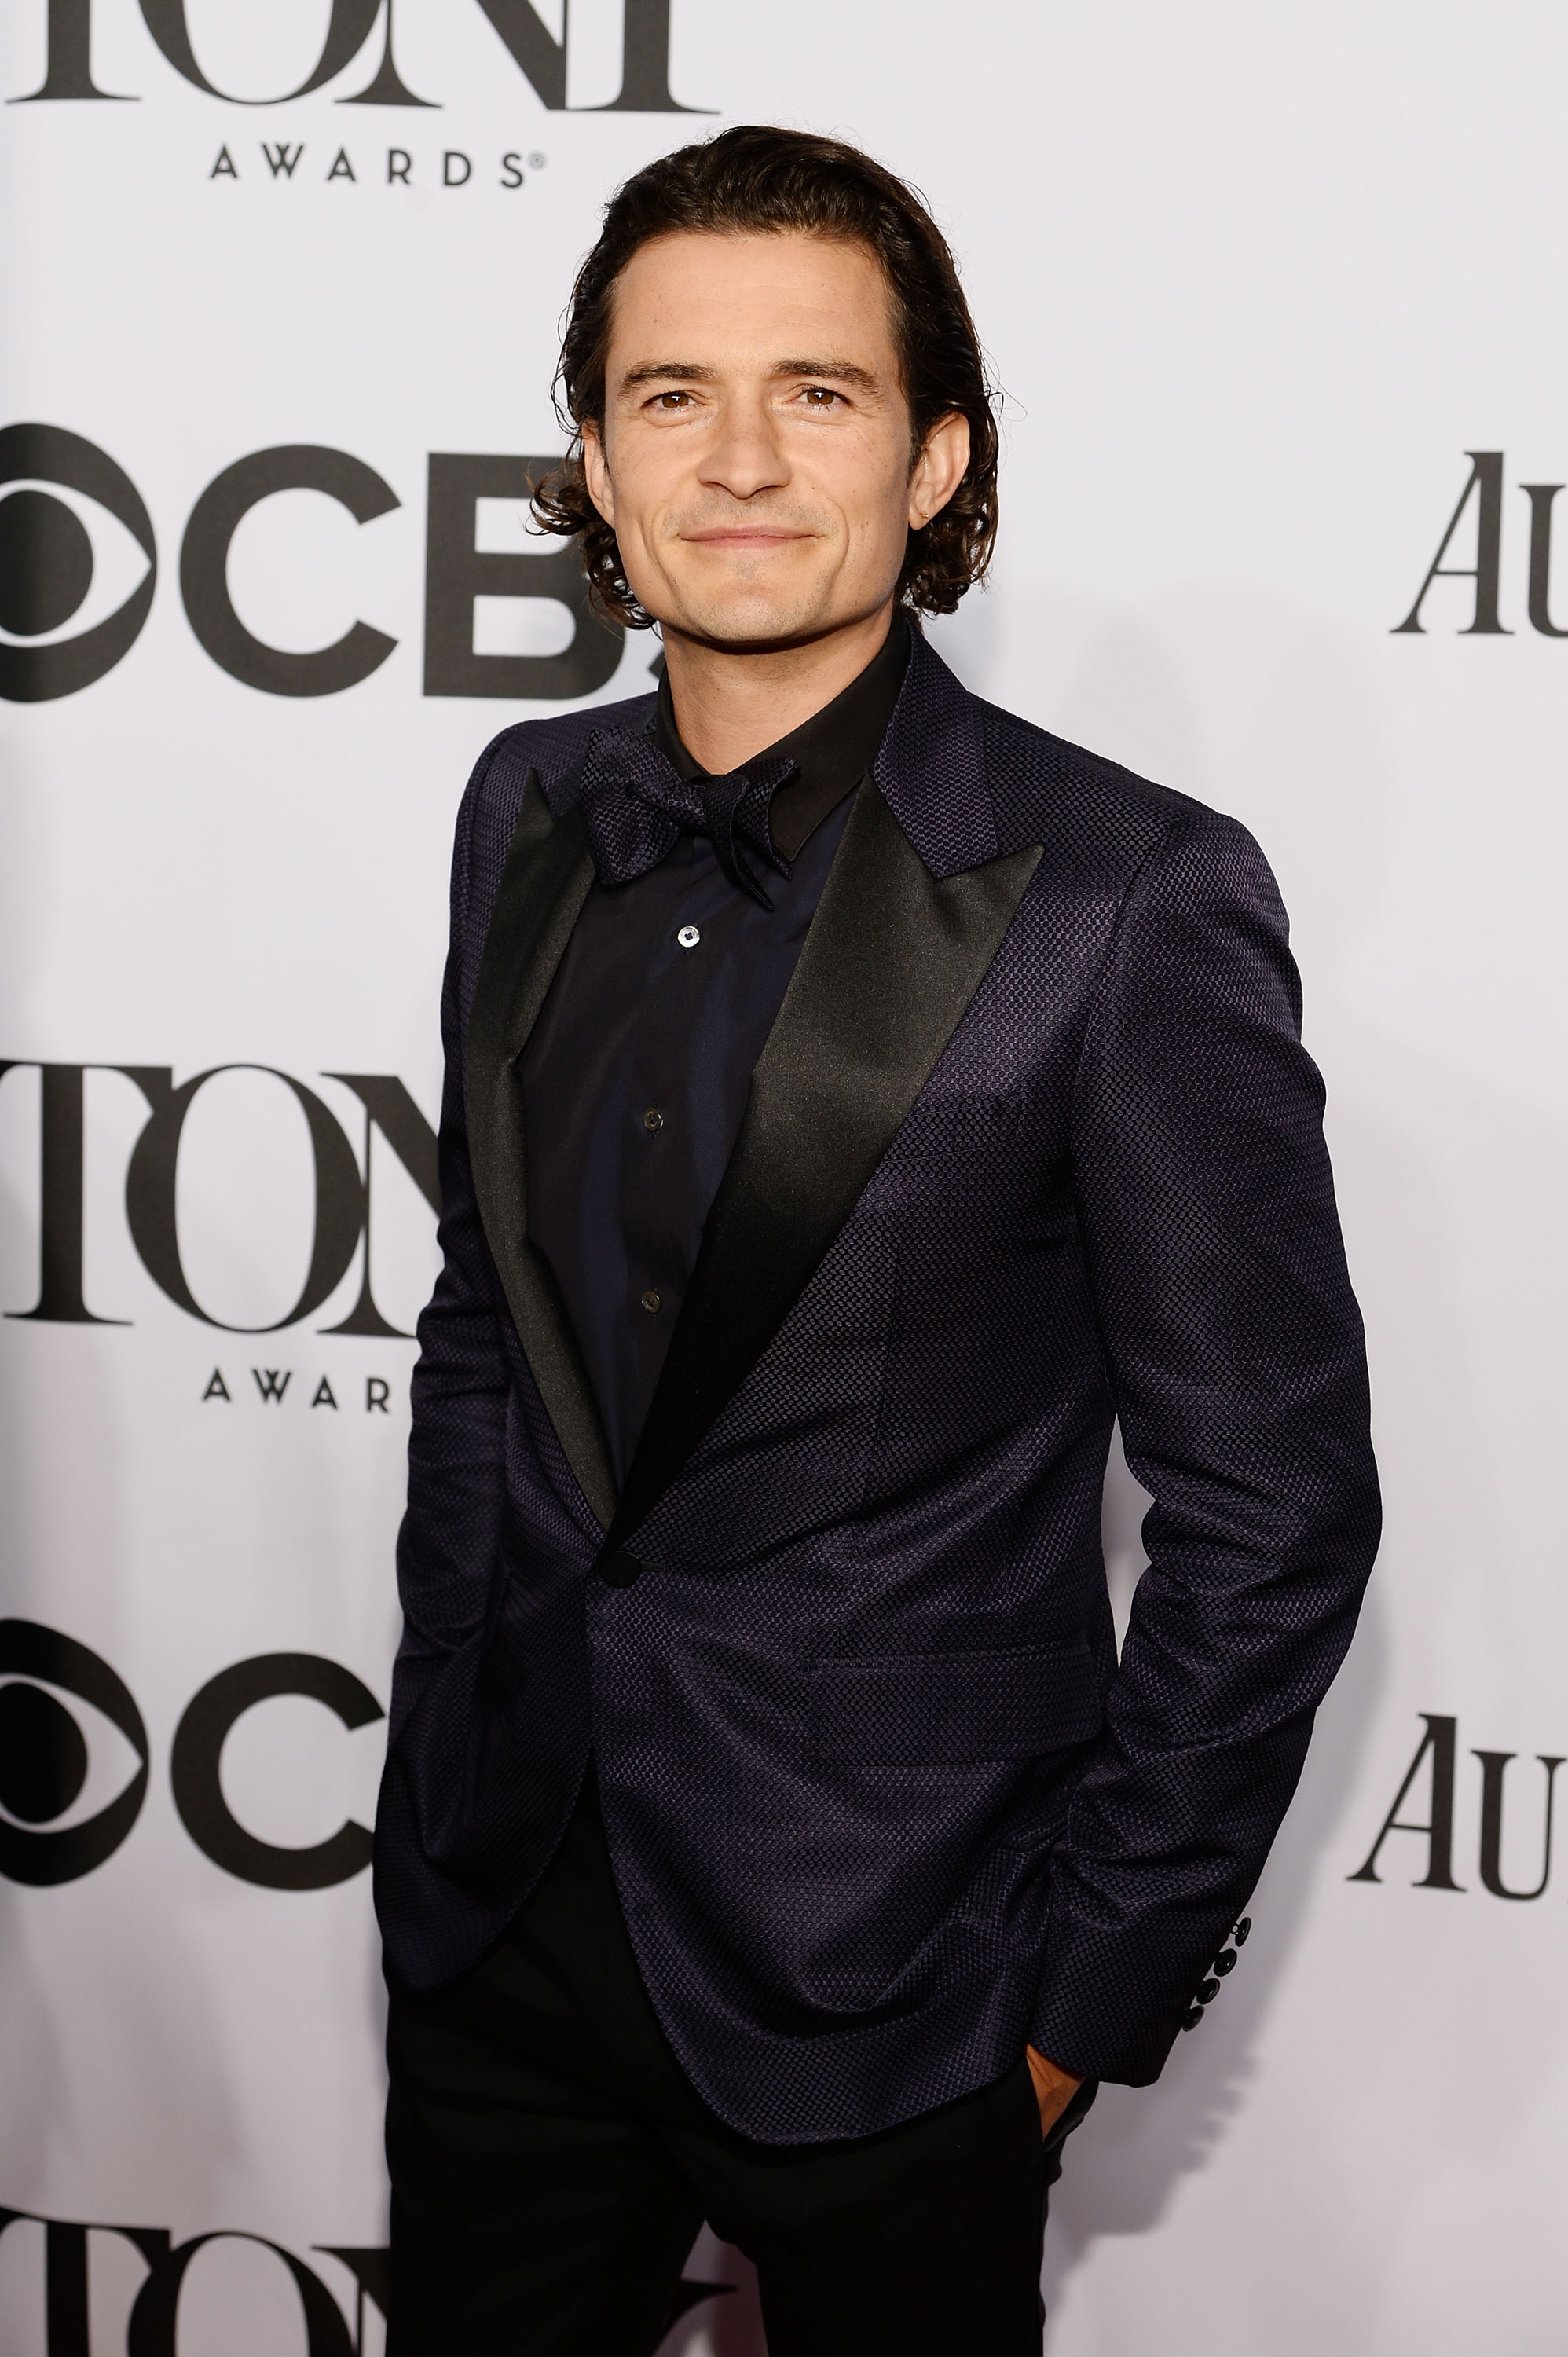 Actor Orlando Bloom attends the 68th Annual Tony Awards at Radio City Music Hall on June 8, 2014 in New York City.